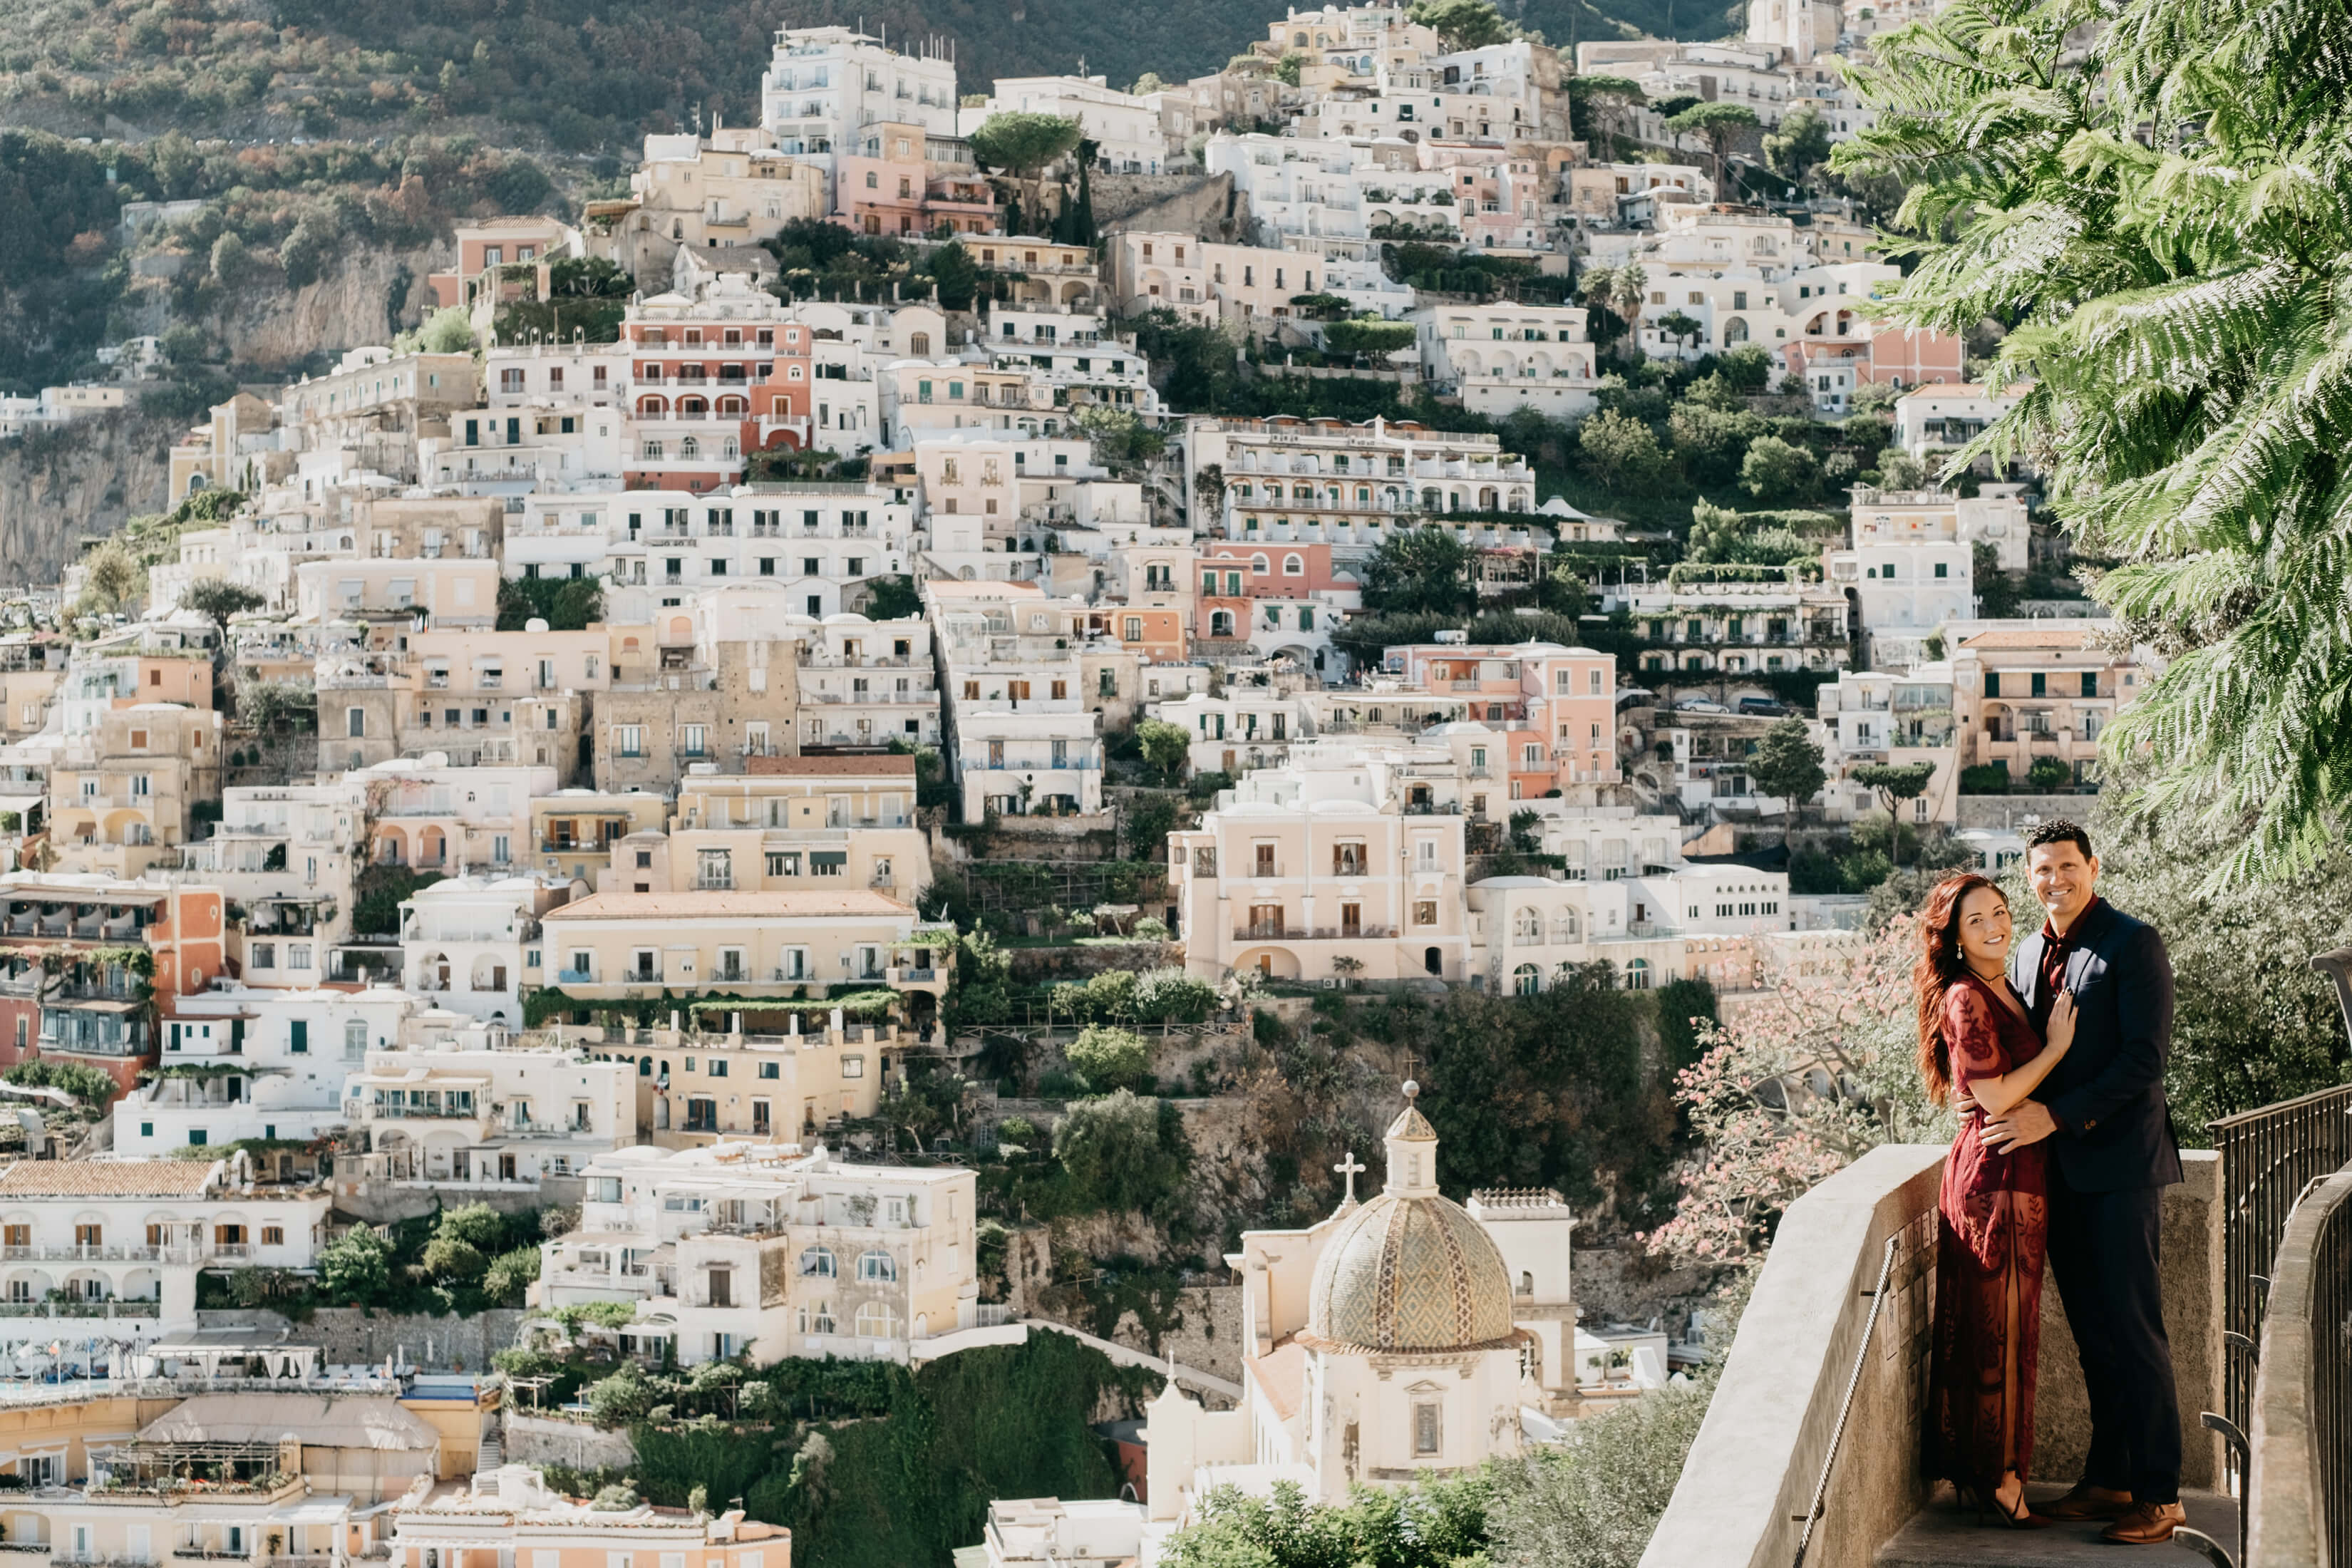 Best Places to Take Instagram Photos in Positano